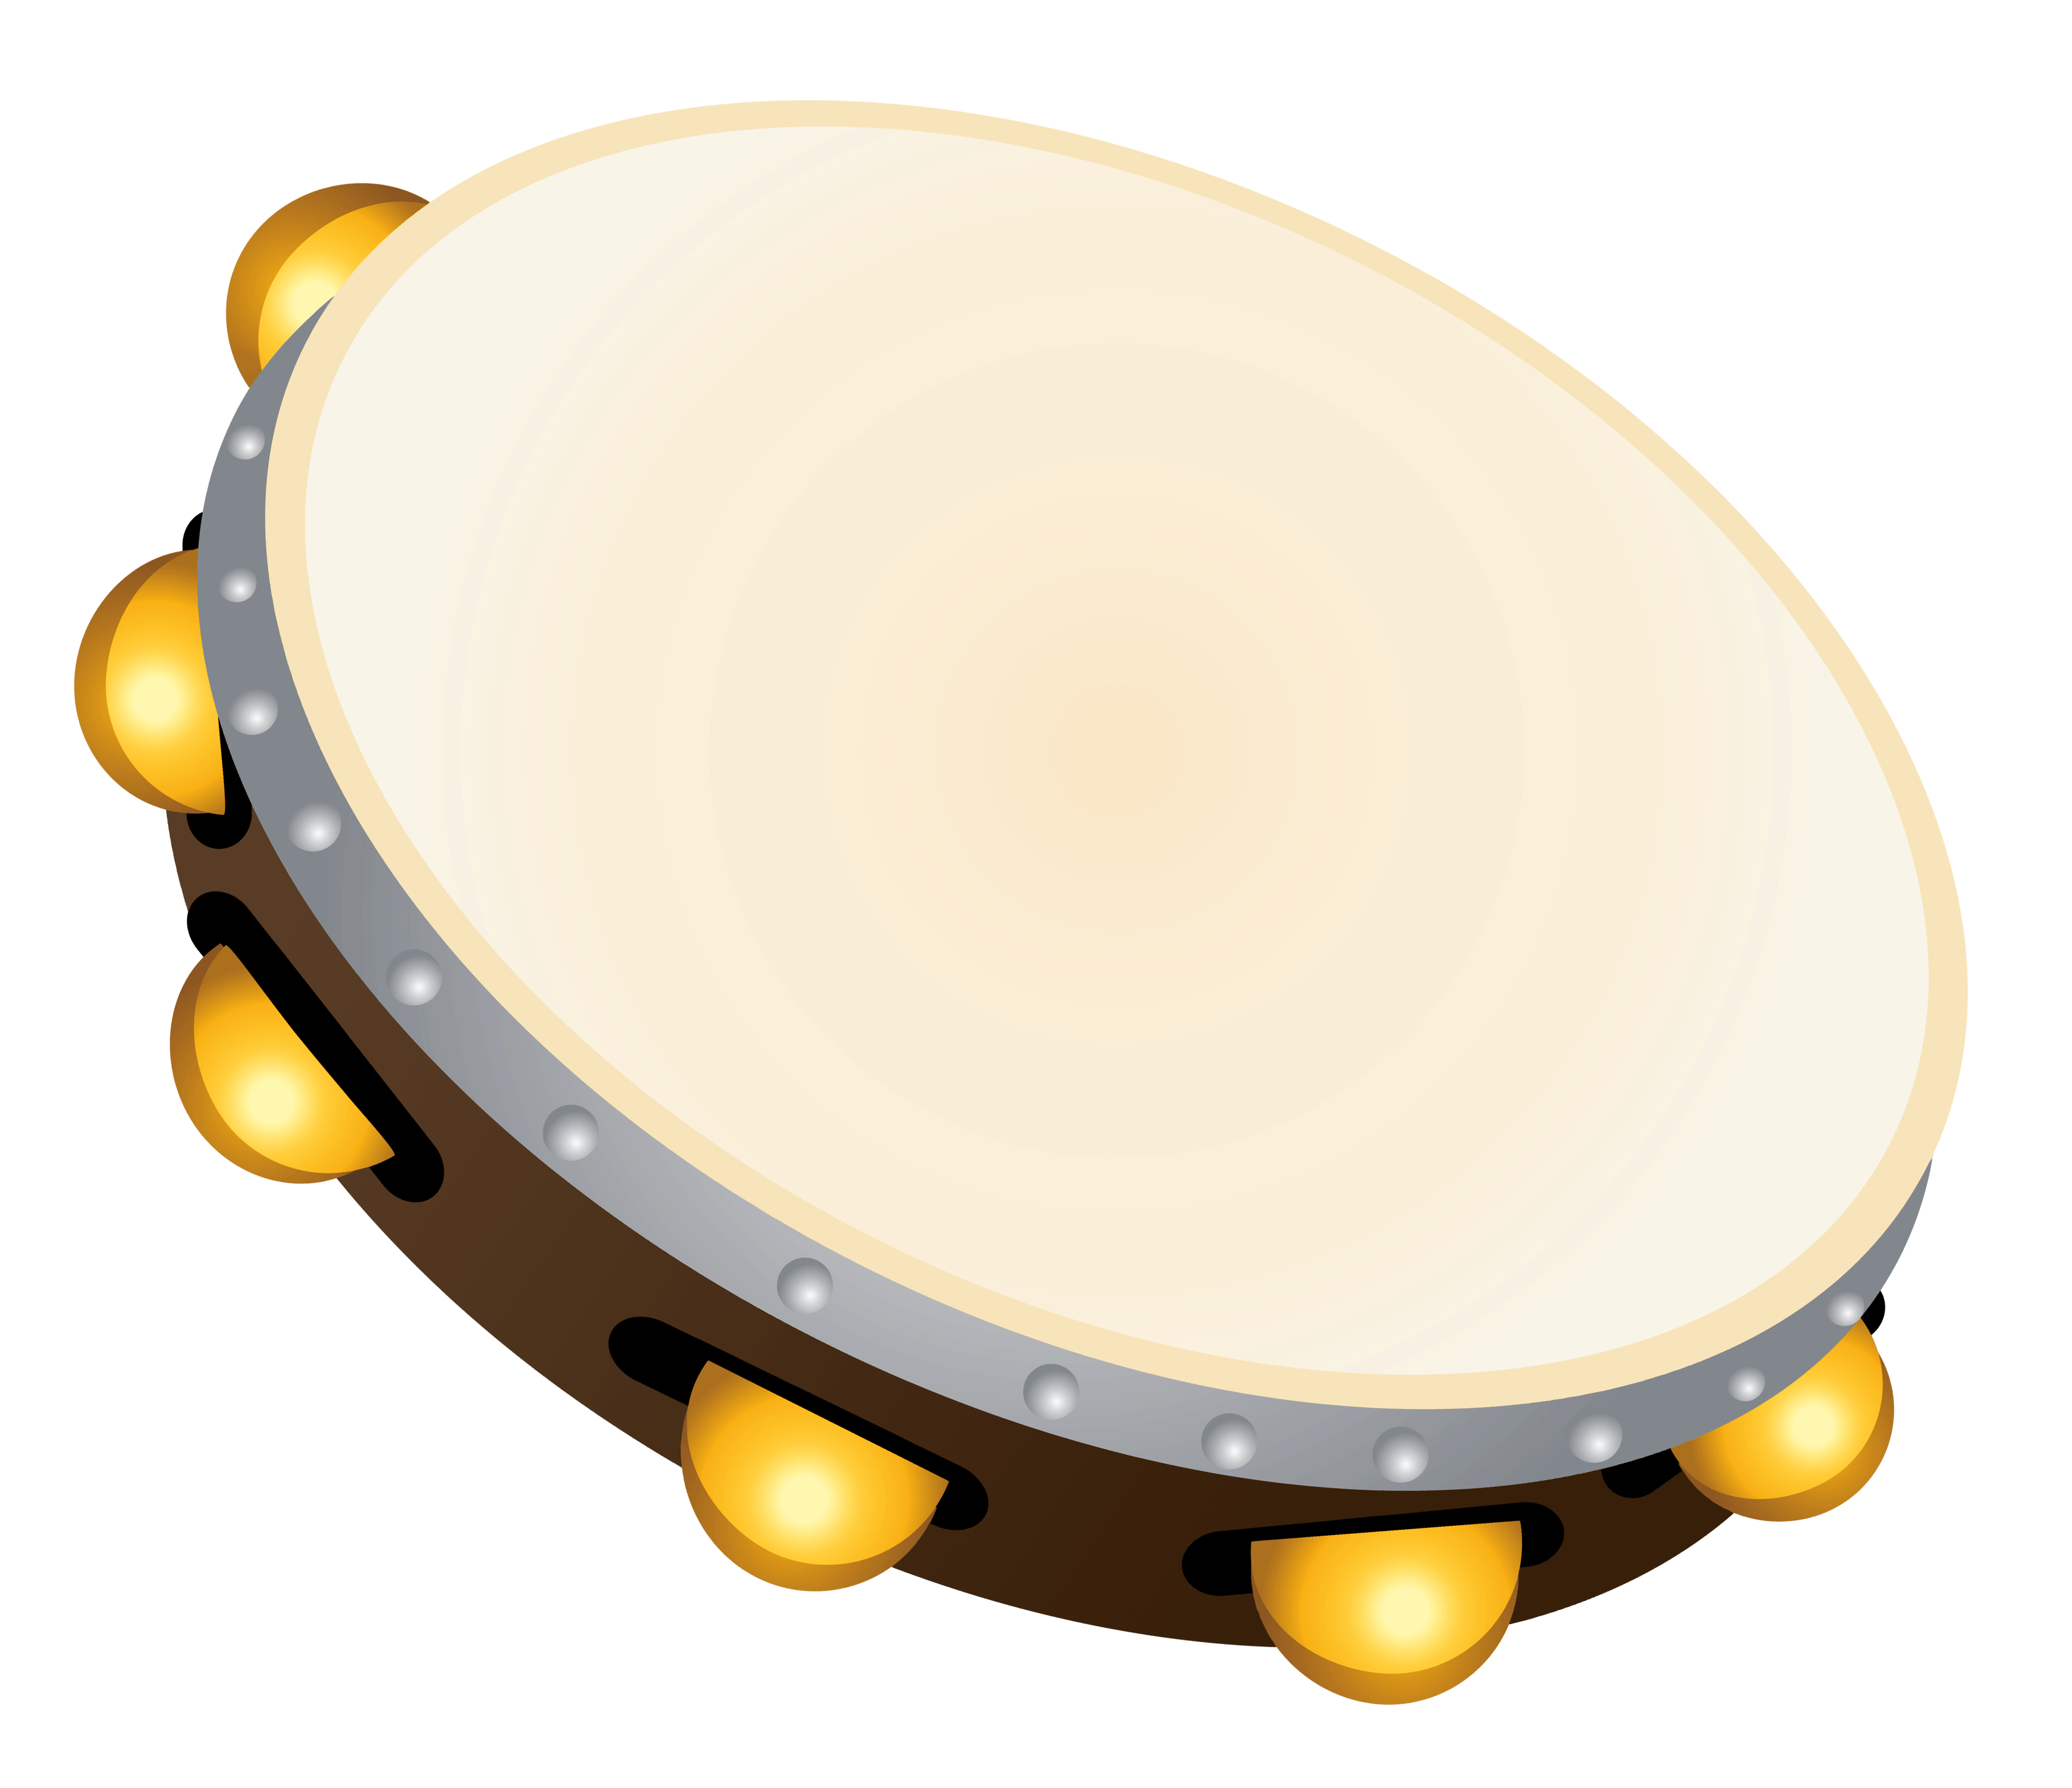 Transparent Tambourine PNG Clipart